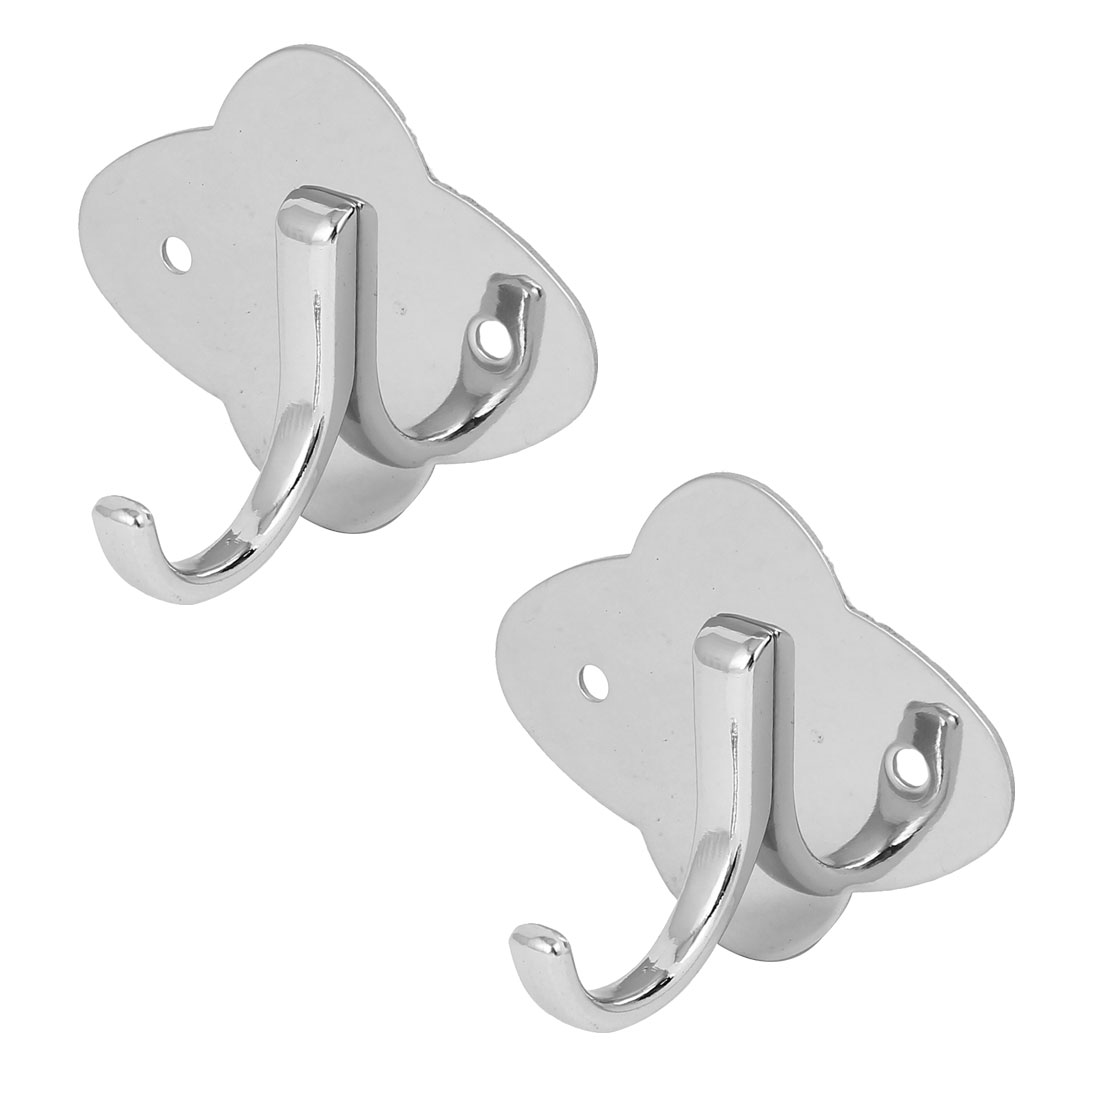 Foyer Bathroom Door Bag Key Single Hanger Stainless Steel Wall Mount Hook Silver Tone 2pcs